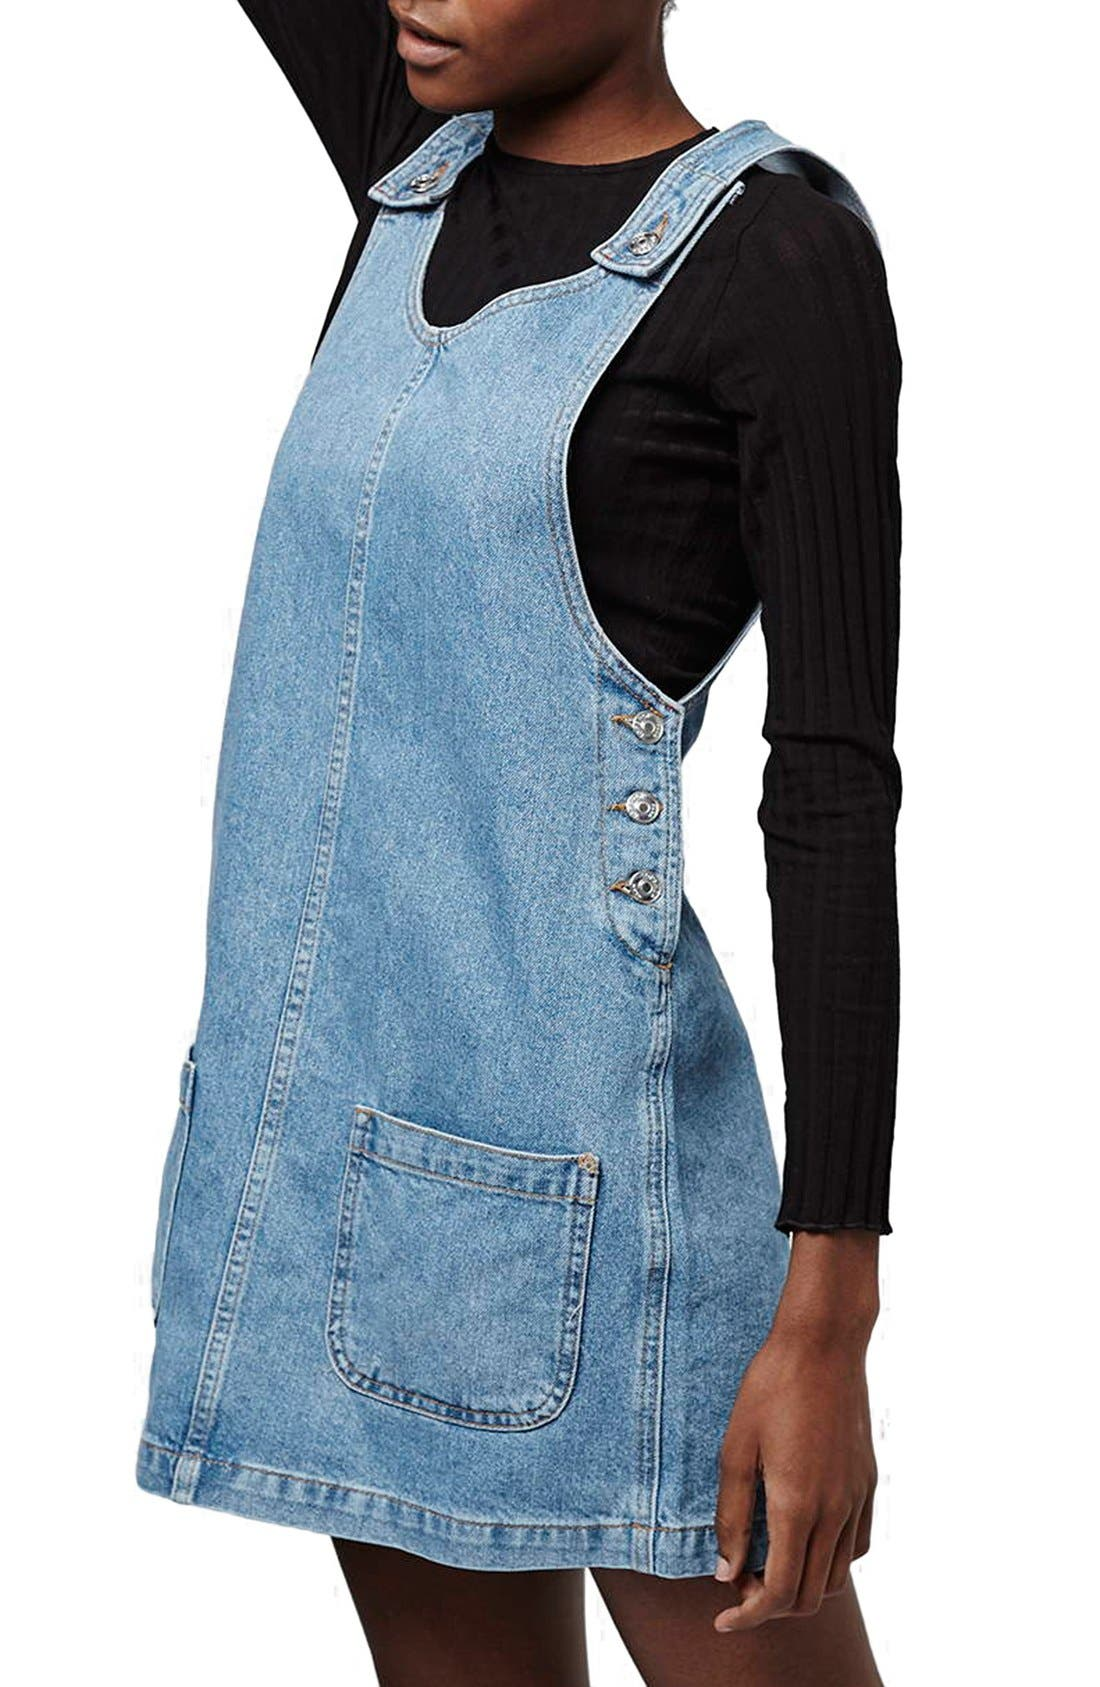 Alternate Image 1 Selected - Topshop Patch Pocket Denim Pinafore Dress